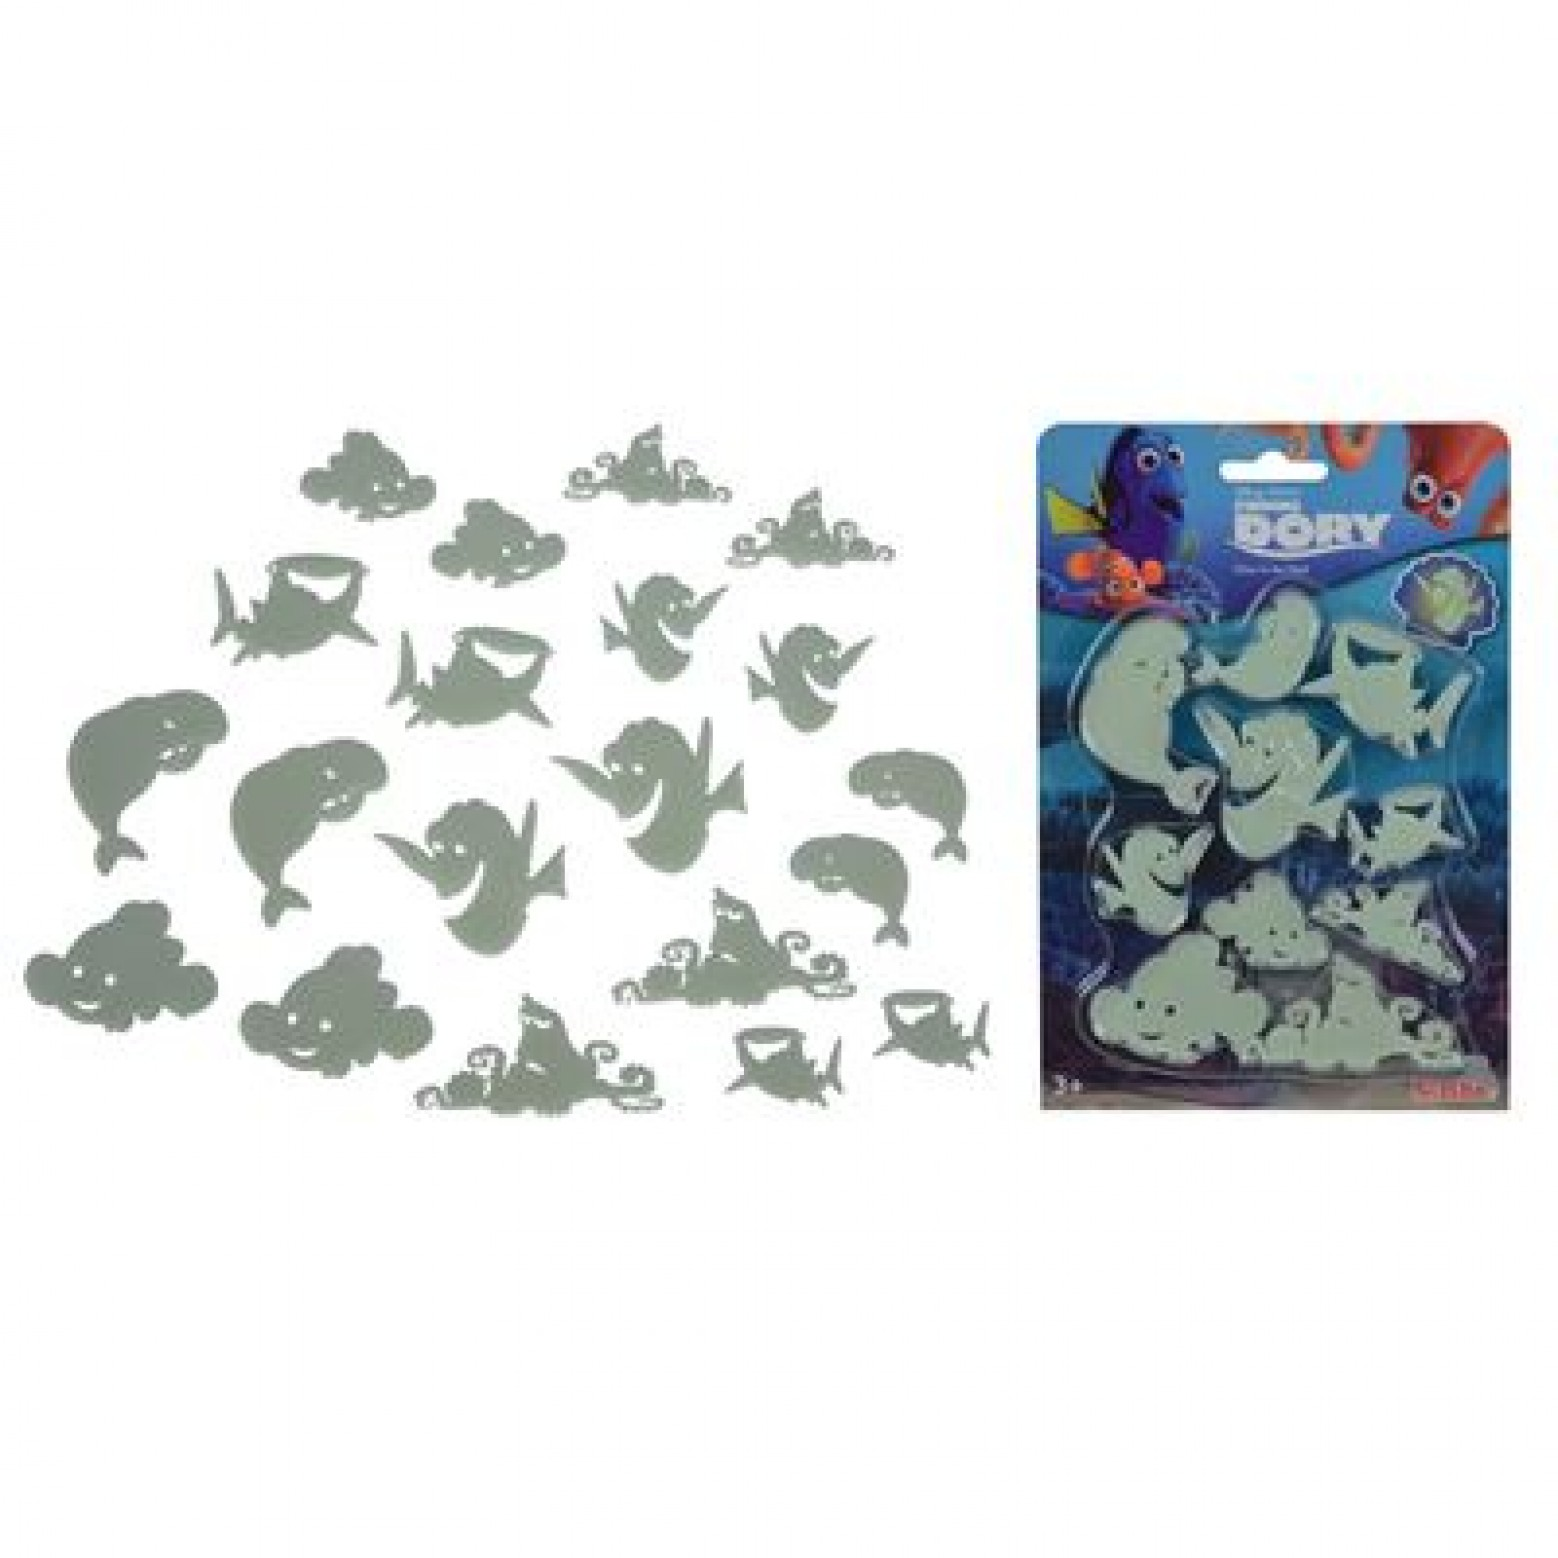 Finding Dory Glow in the dark set 3+